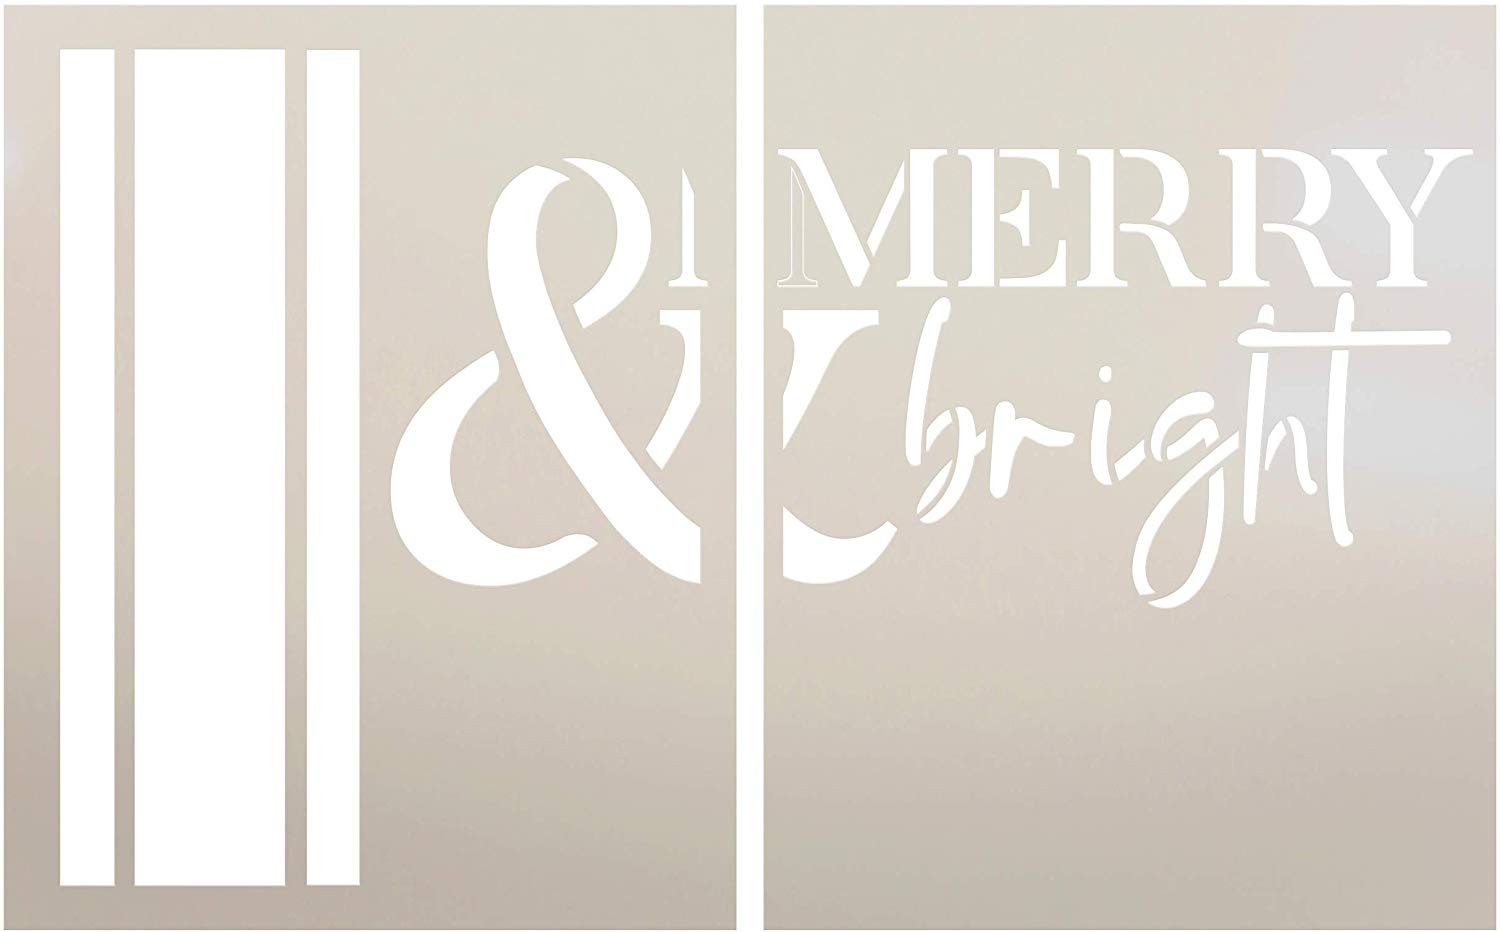 Merry & Bright Jumbo 2-Part Stencil with Stripes by StudioR12 | DIY Christmas Word Art Home Decor | Craft & Paint Oversize Holiday Wood Signs | Reusable Mylar Template | Extra Large | 24 x 36 inch